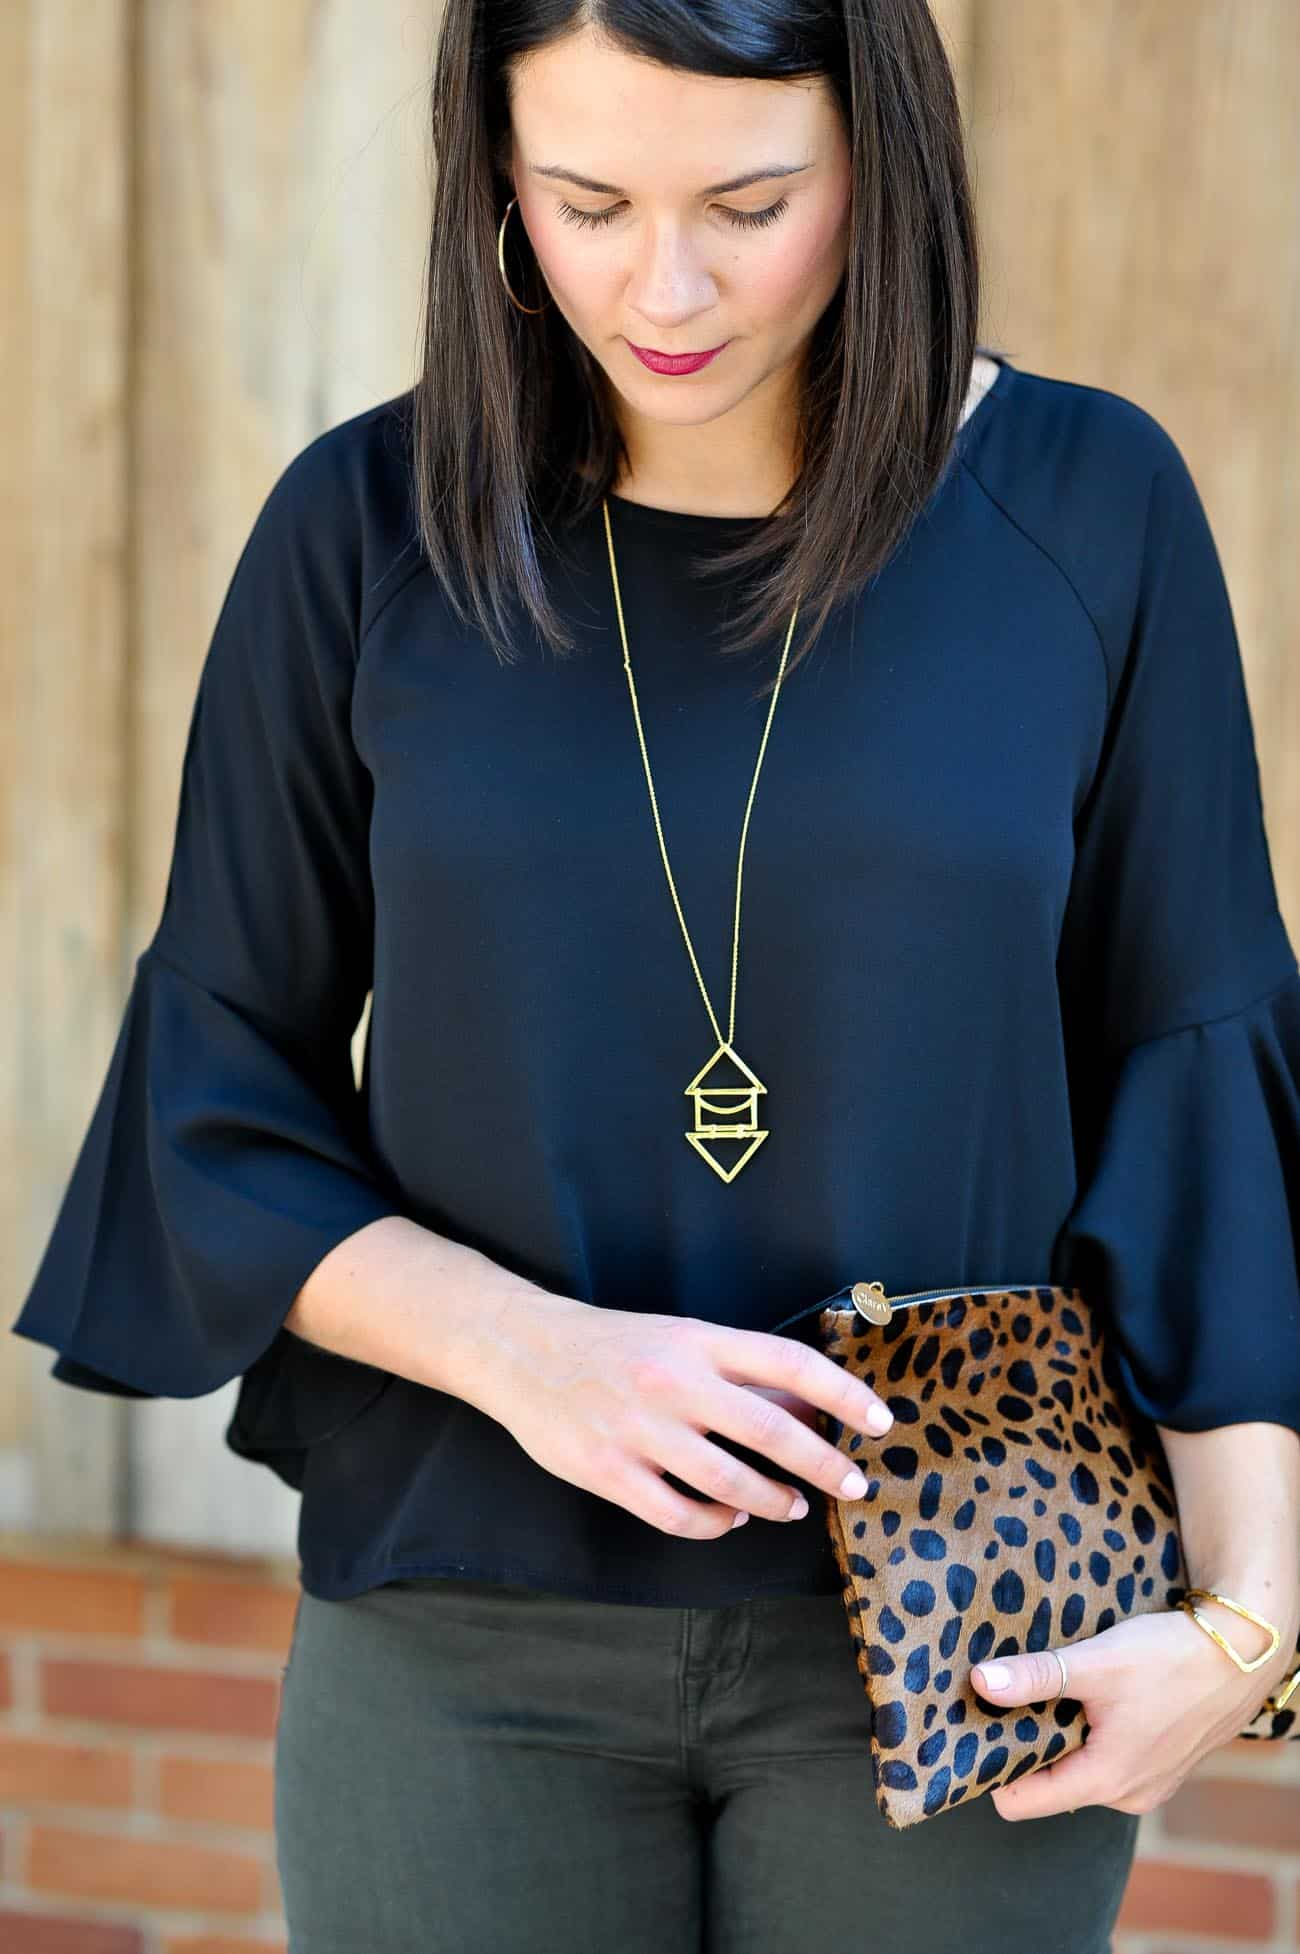 effortless outfits for a night out, fall outfit ideas, trumpet sleeve tops - My Style Vita @mystylevita